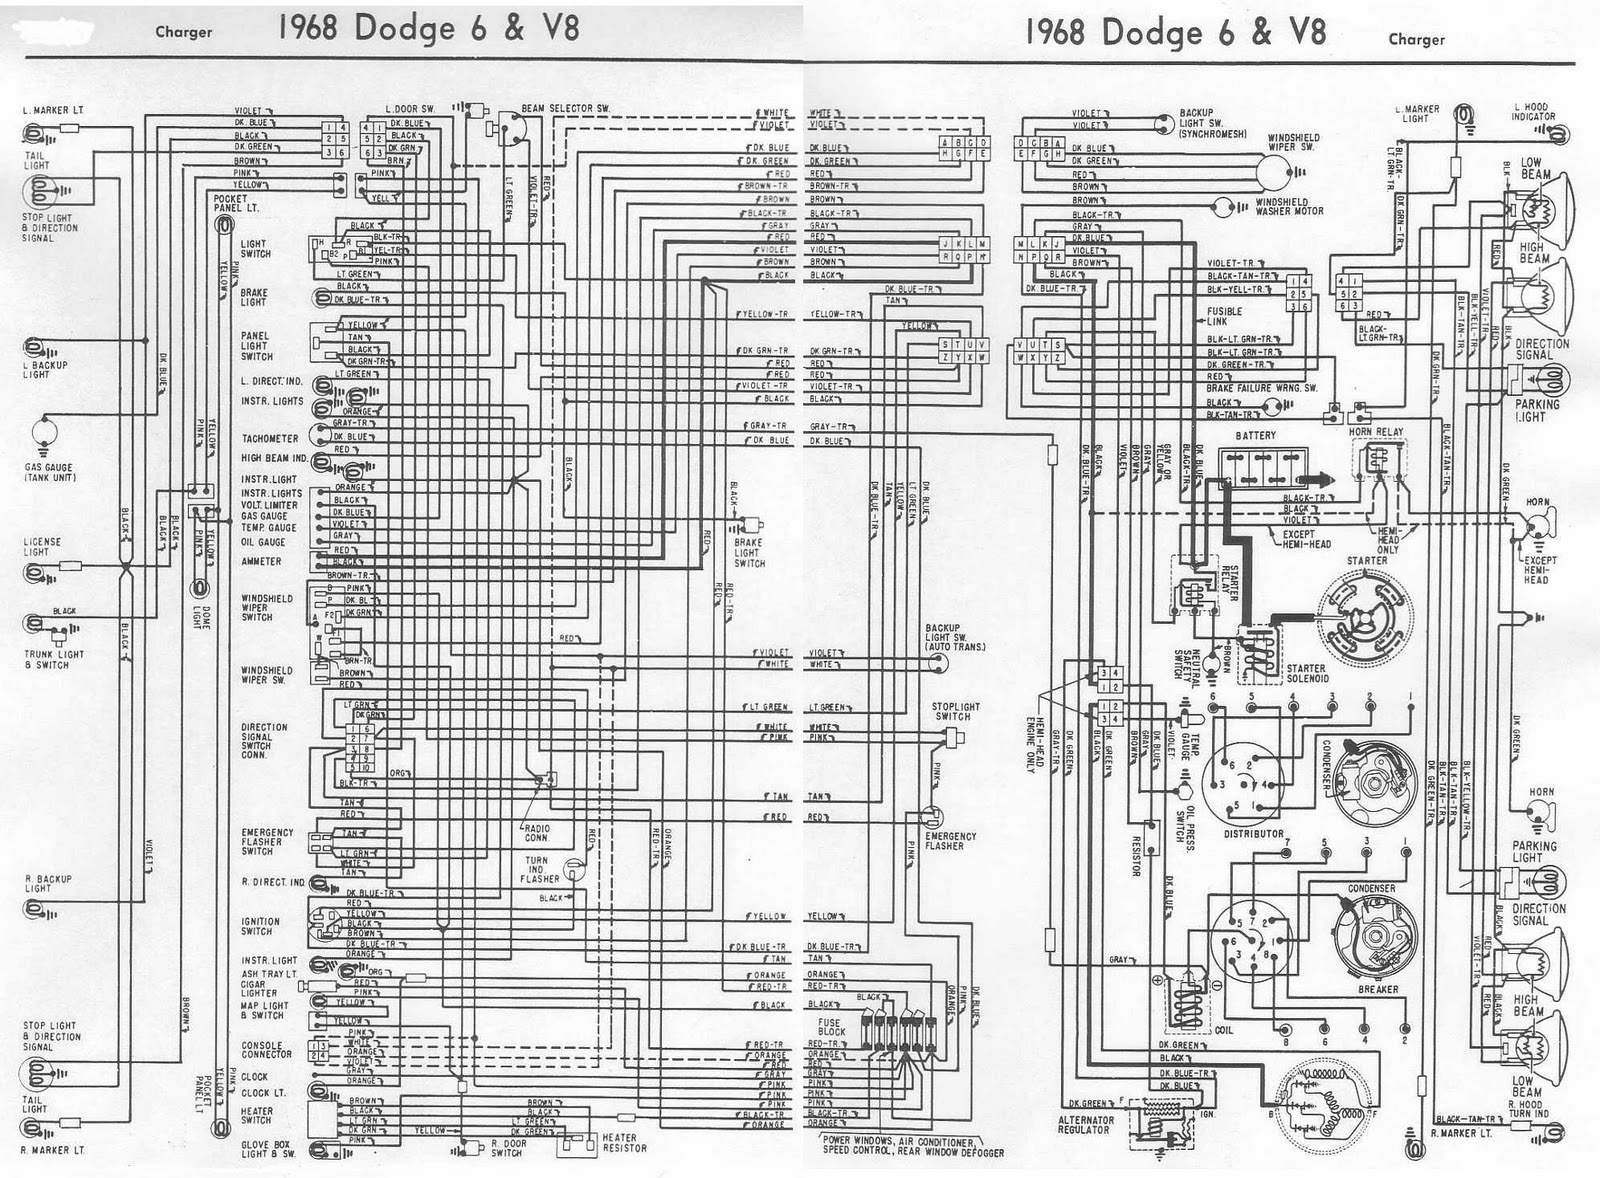 Dodge+Charger+1968+6+and+V8+Complete+Electrical+Wiring+Diagram dodge charger 1968 6 and v8 complete electrical wiring diagram 1970 corvette wiring diagram at bayanpartner.co